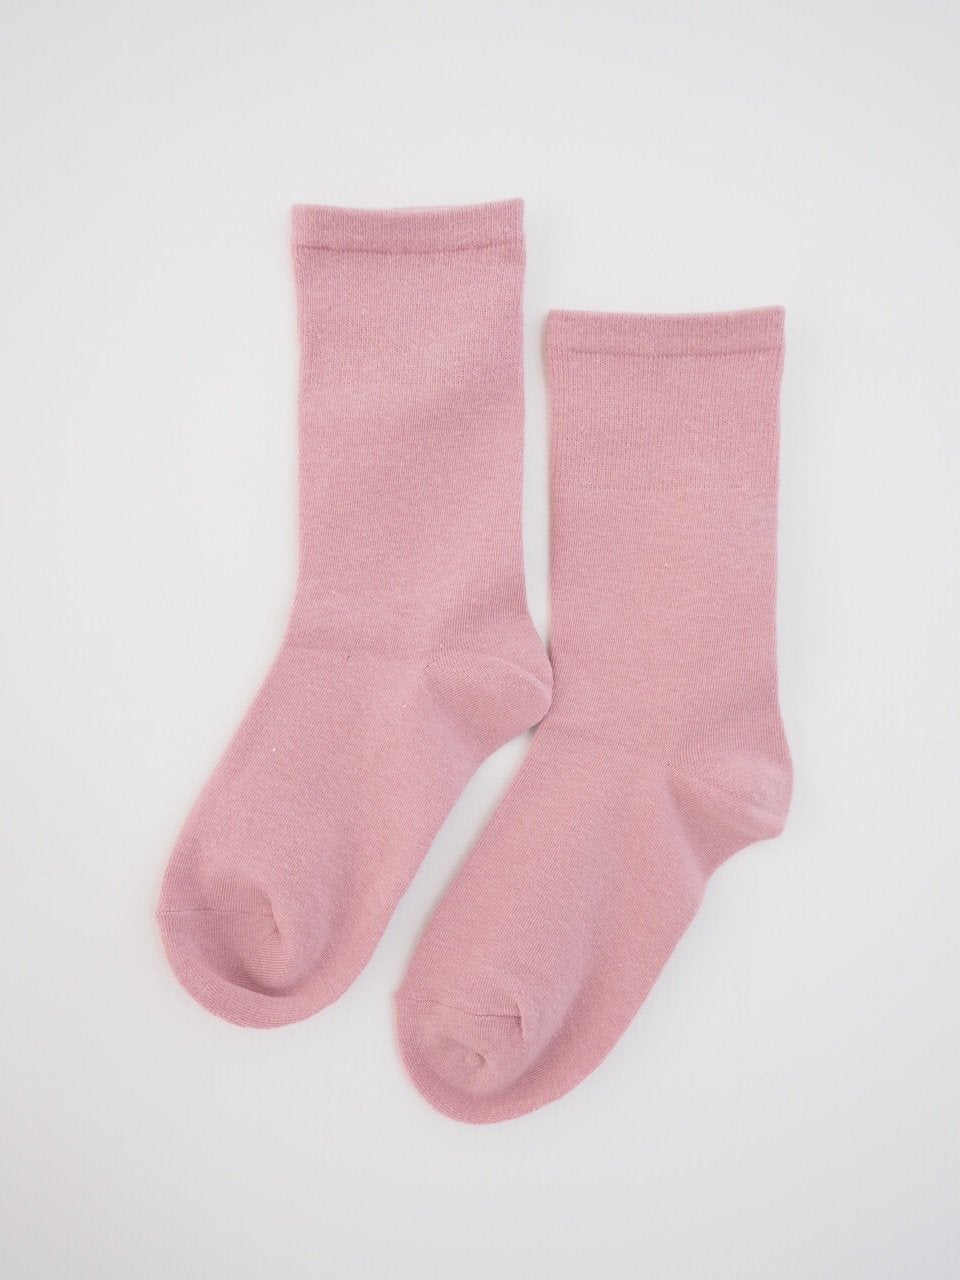 Daily Socks – Happiness